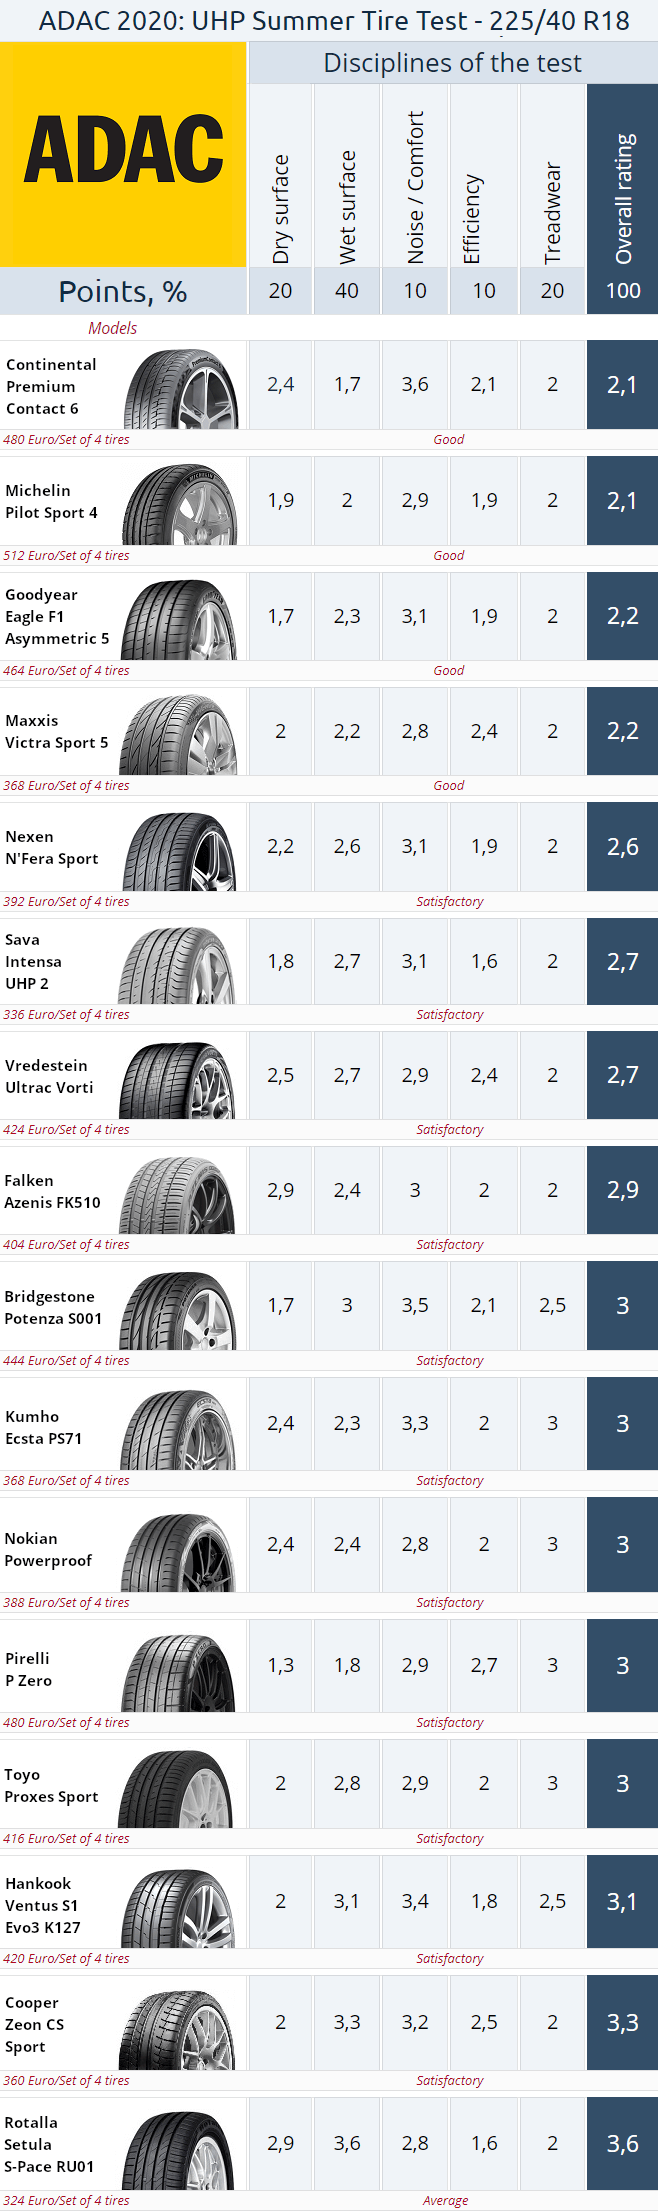 Result summary. ADAC 225/40 R18 UHP Summer Tire Test 2020